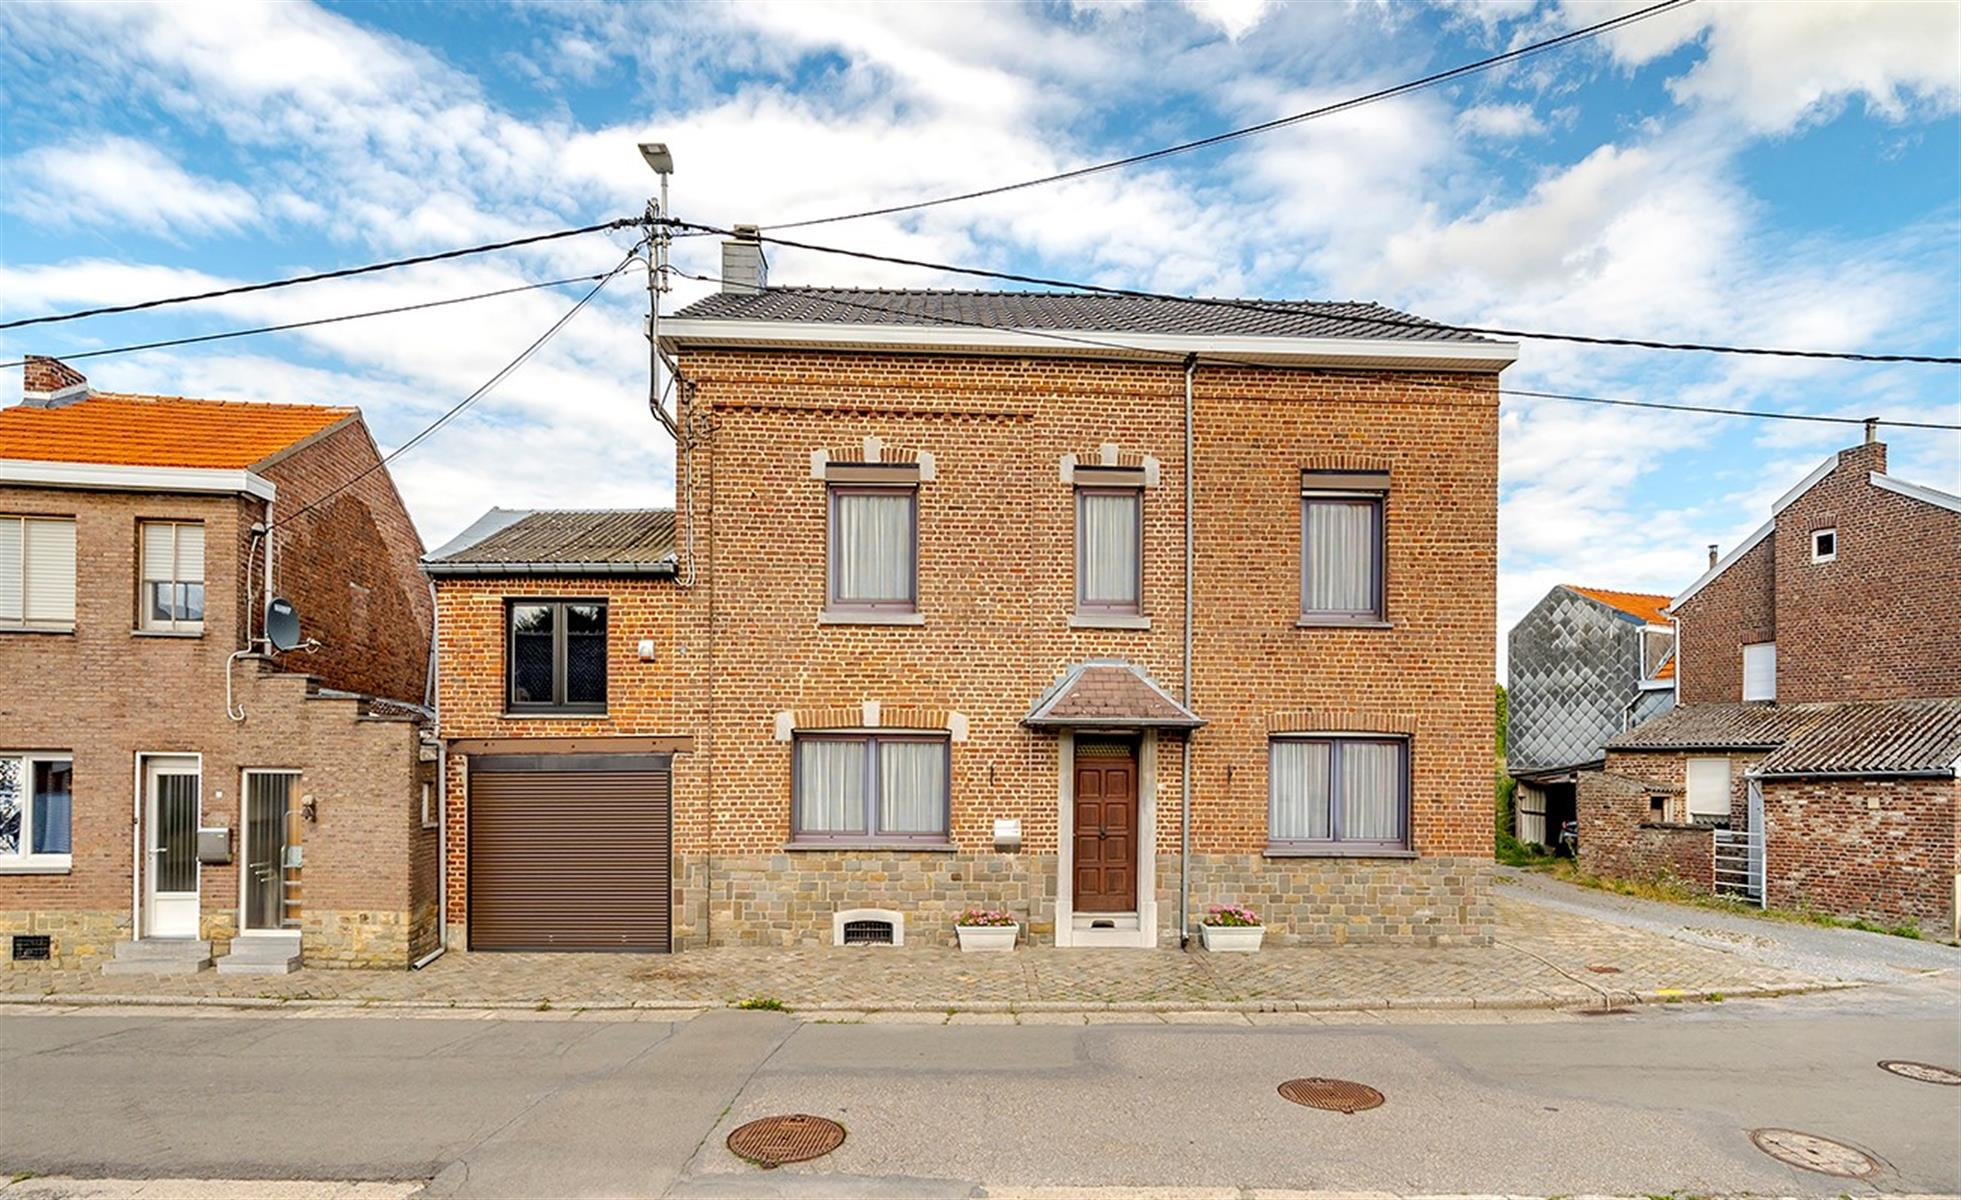 Maison - Remicourt Hodeige - #4174779-0